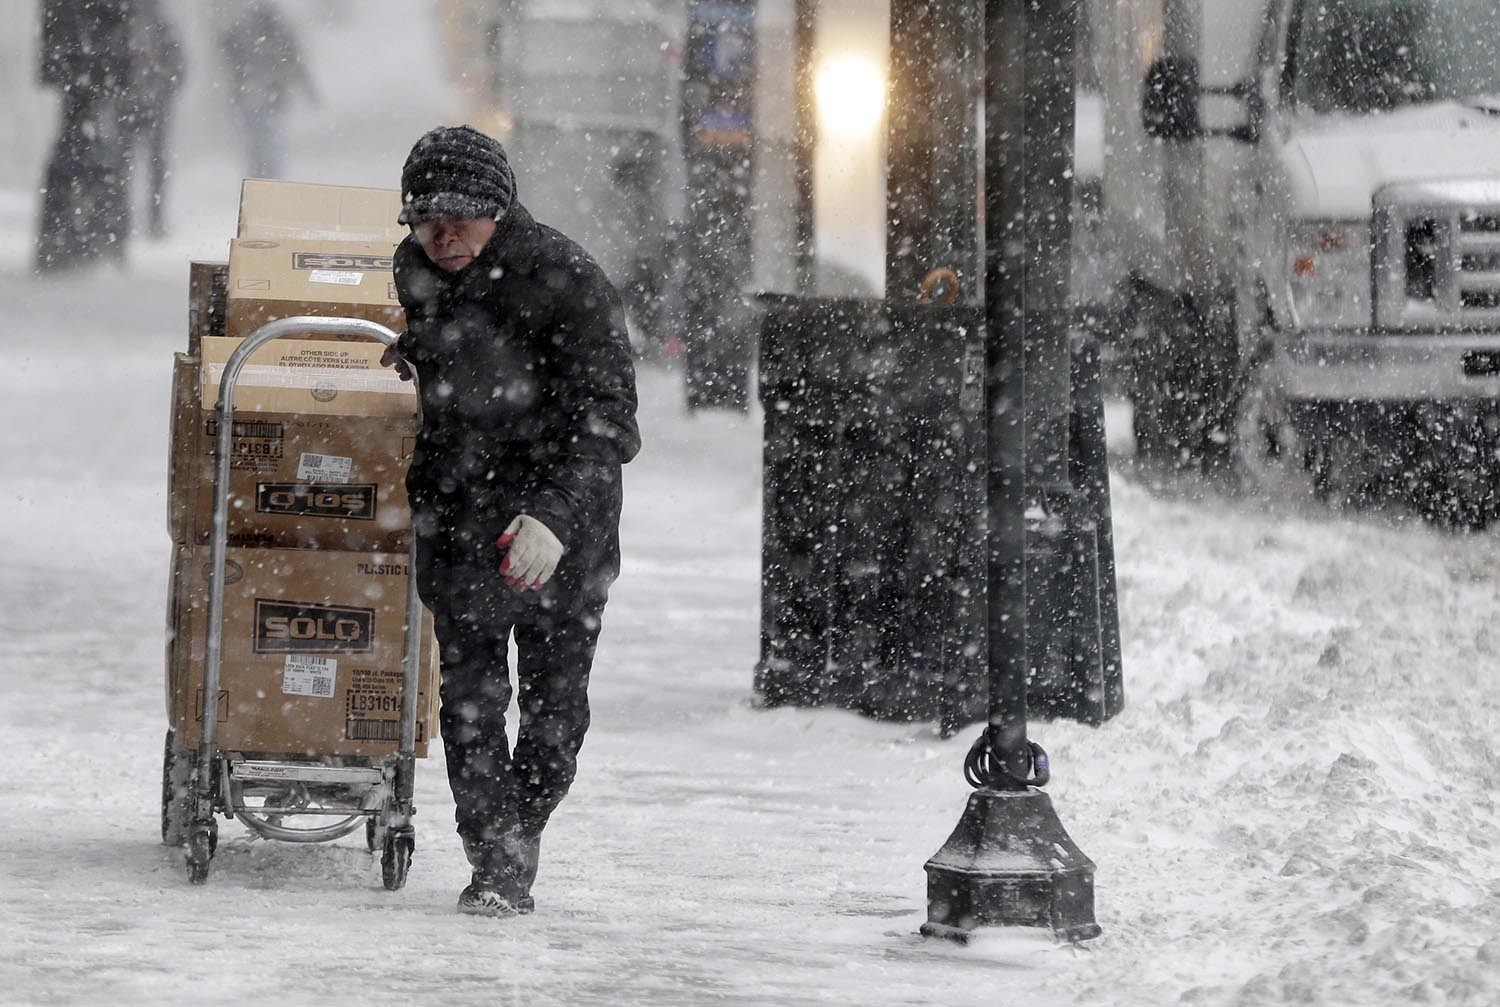 <div class='meta'><div class='origin-logo' data-origin='AP'></div><span class='caption-text' data-credit='AP Photo/Seth Wenig'>A man struggles to make a delivery through snowy streets in New York, Thursday, Jan. 4, 2018.</span></div>